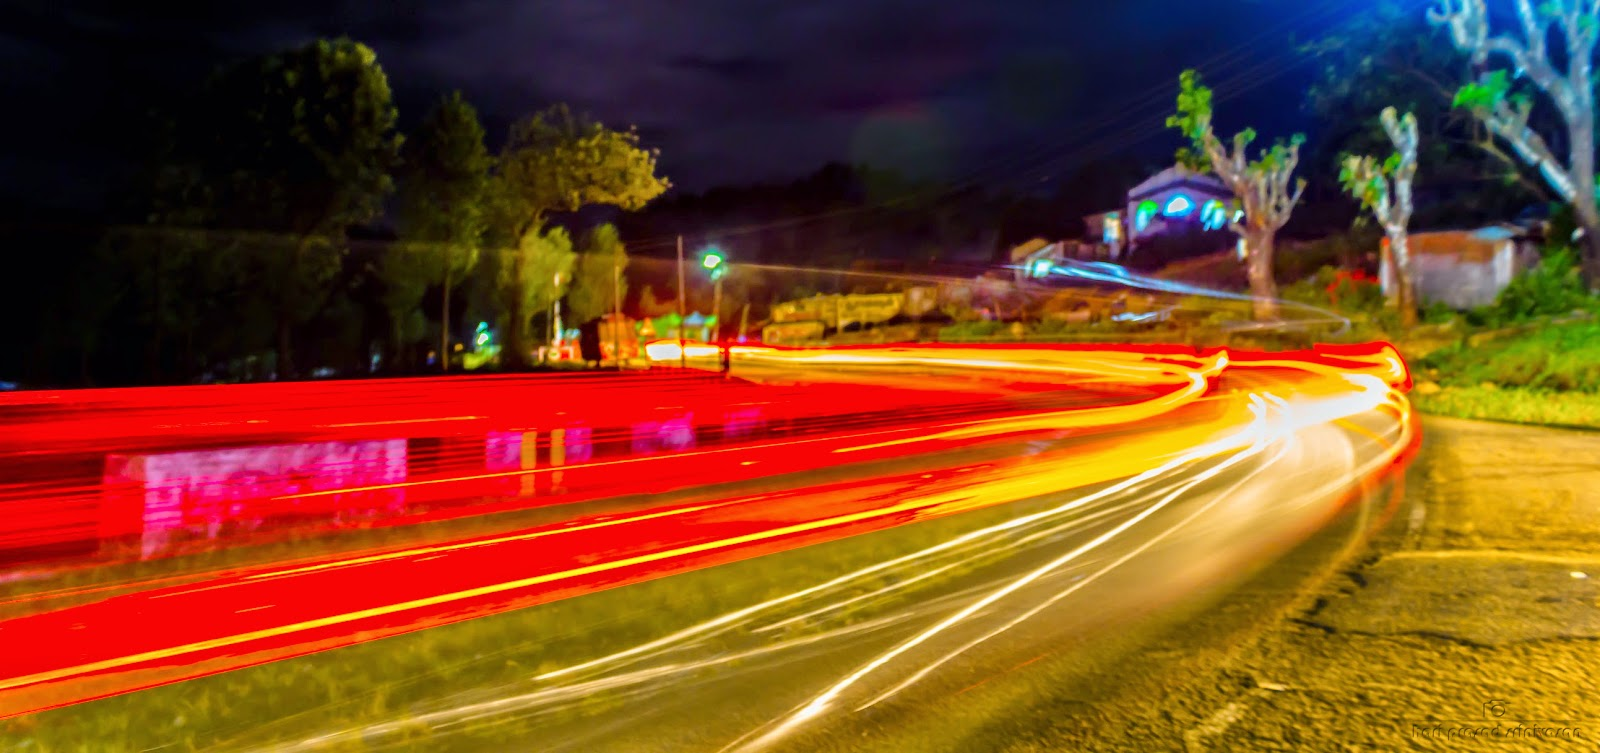 Long exposure - passing lights by vehicles